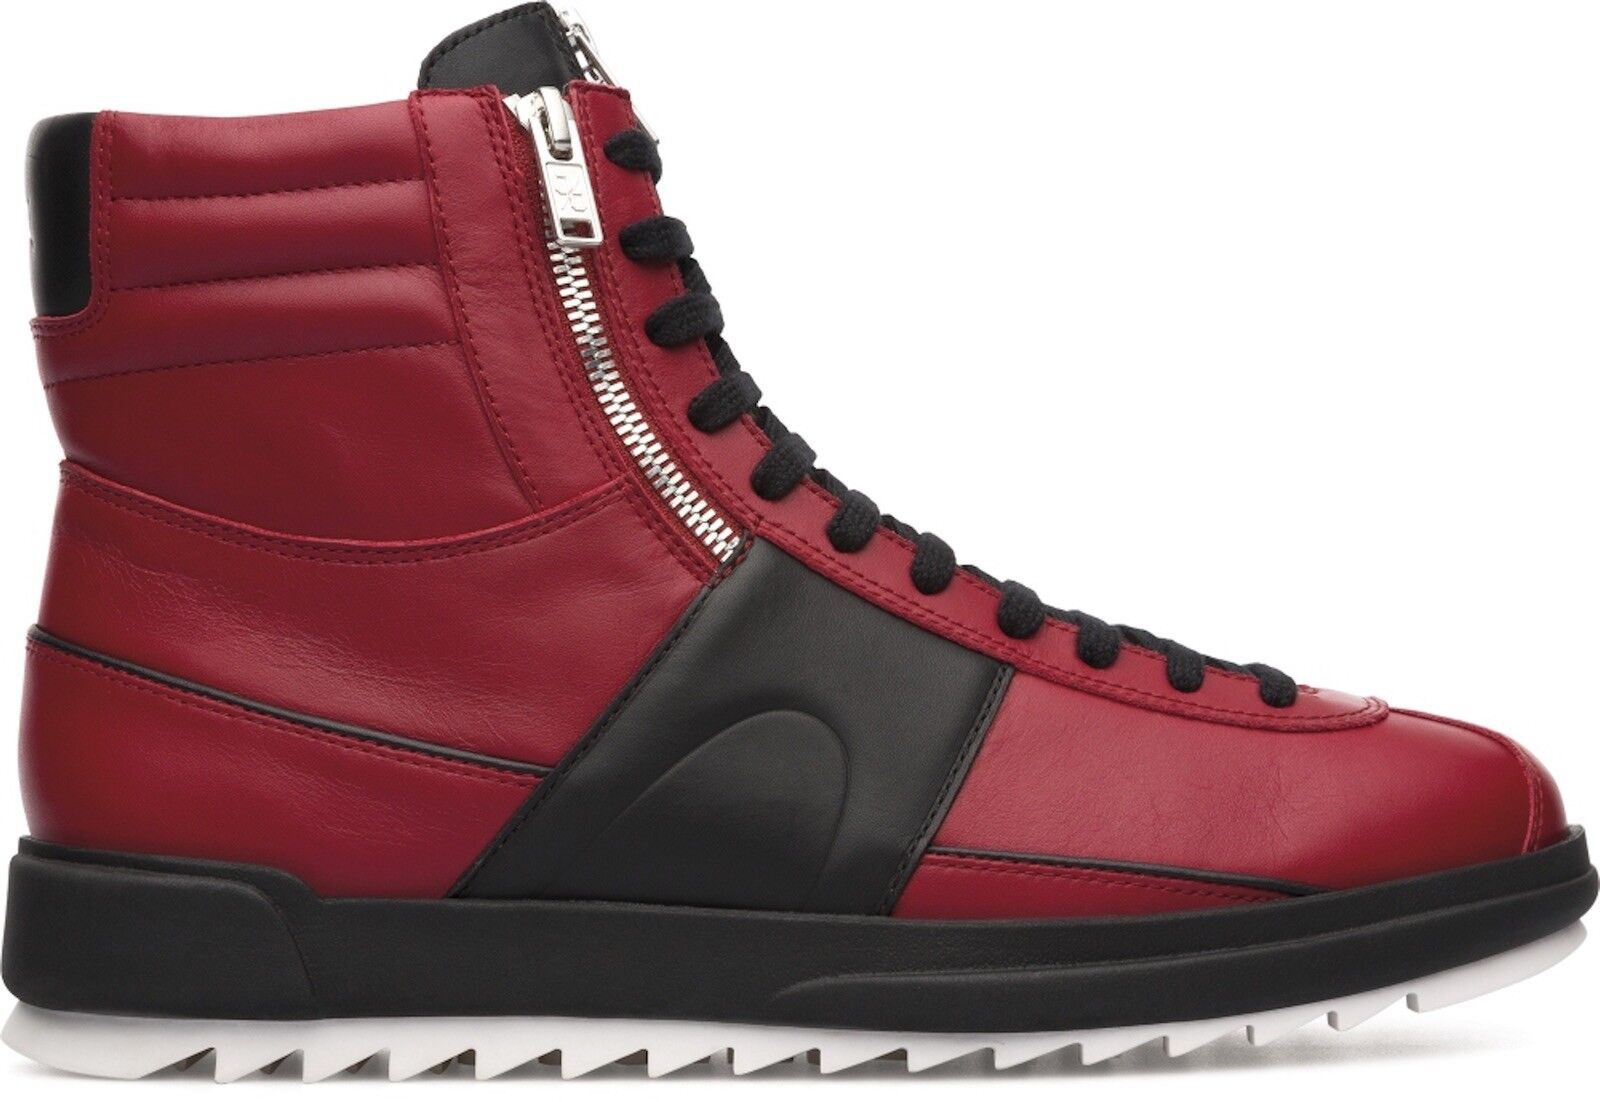 320 Bajowoo X Camper US 11 Together 99PercentIs Boots Red K300077-003